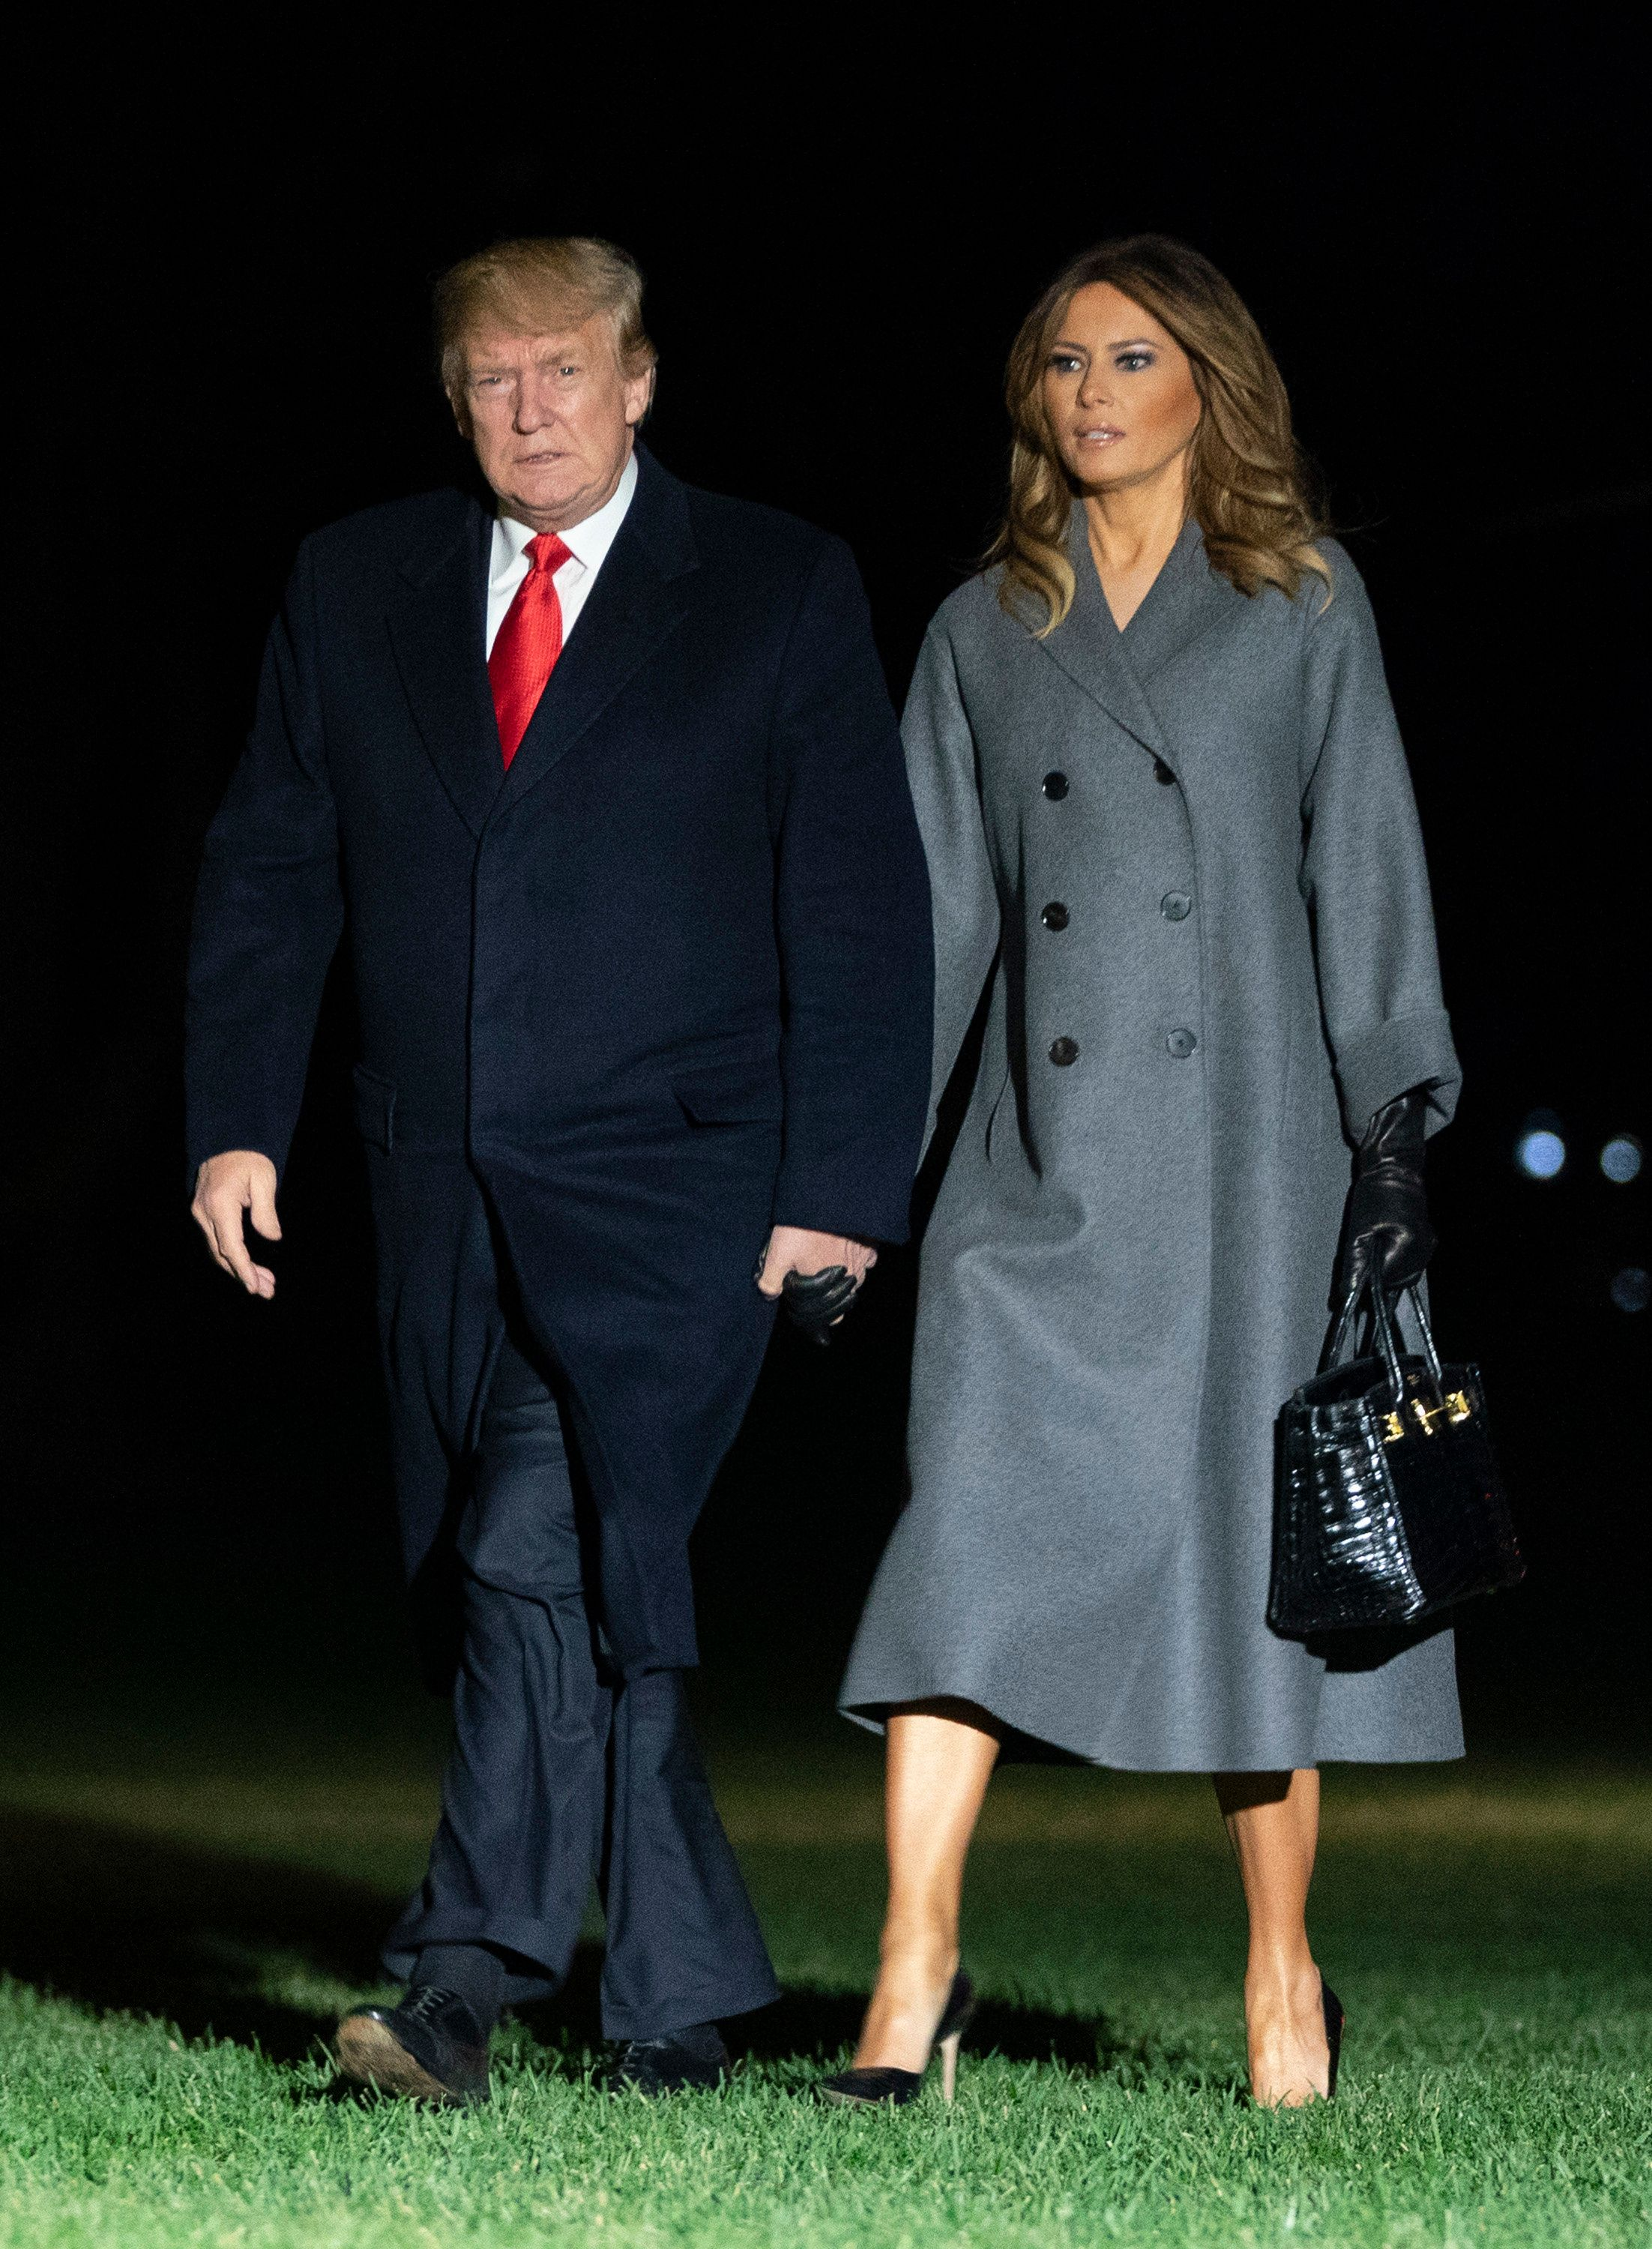 Melania Trump Racked Up £135,000 In Hotel Bills During A One-Day Trip To